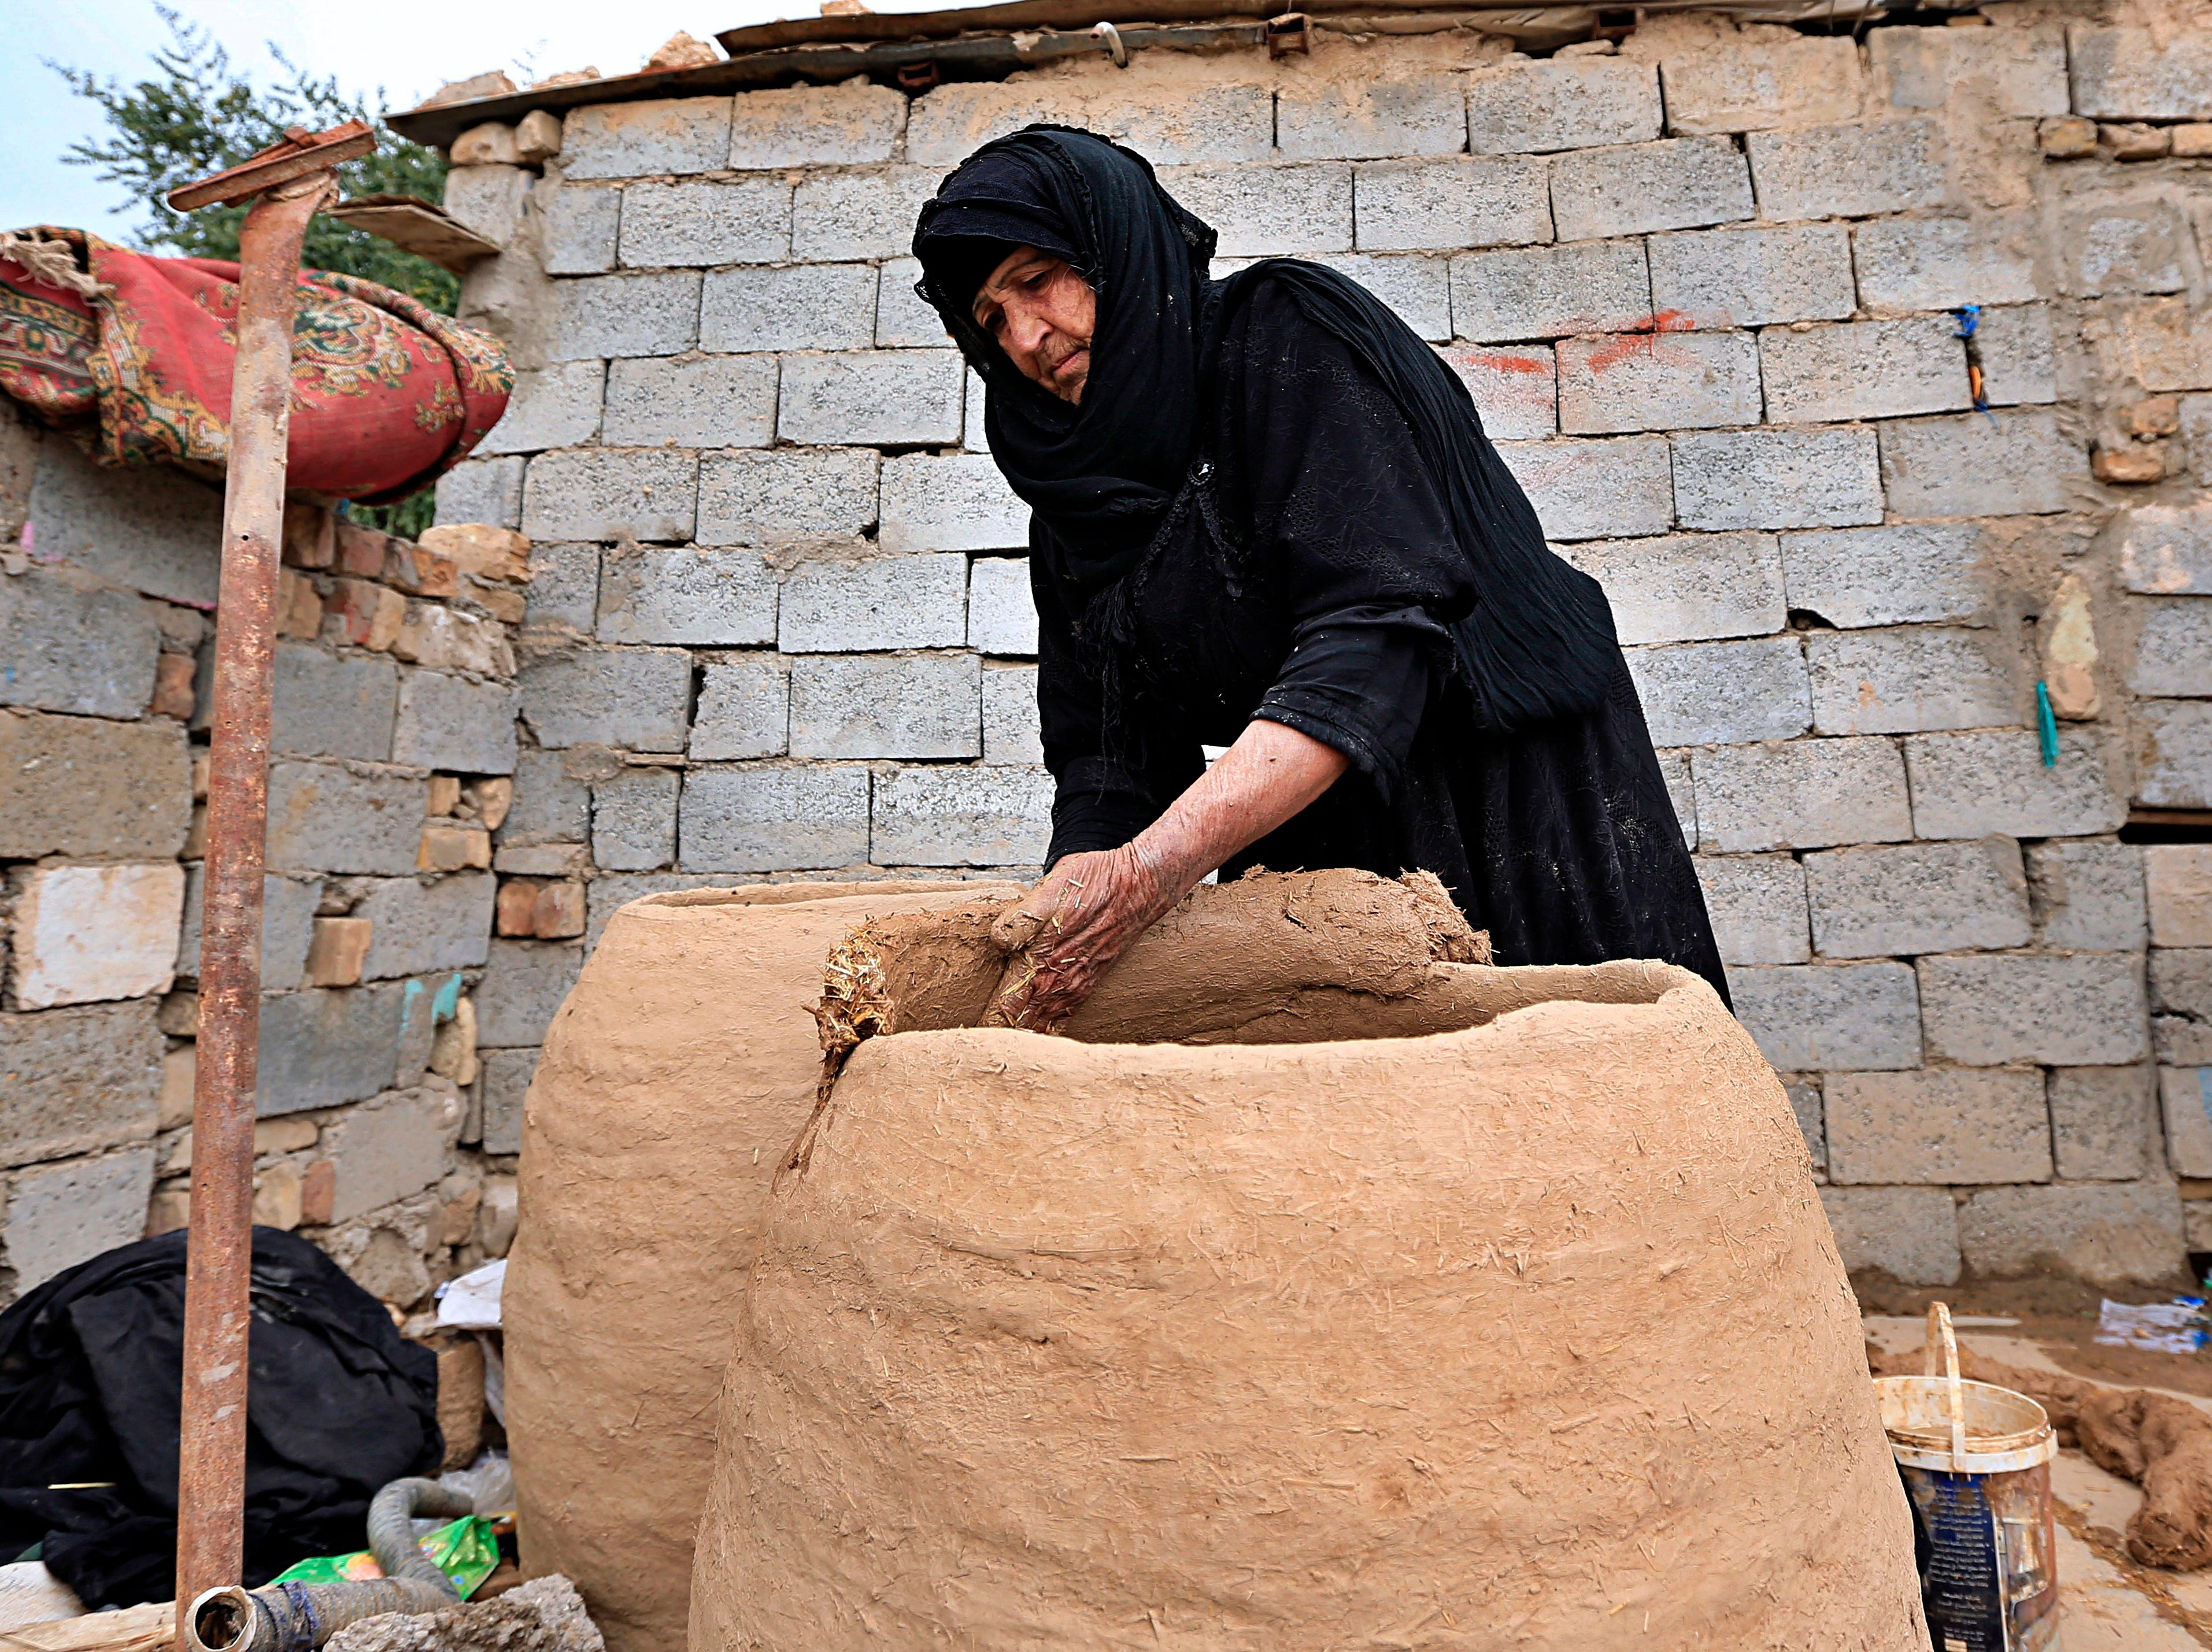 An Iraqi woman builds rough-hewn clay tureens used for cooking bread over a wood fire, at her home as the world celebrates International Women's Day in Baghdad, Iraq, Friday, March 8, 2019. (AP Photo/Hadi Mizban)